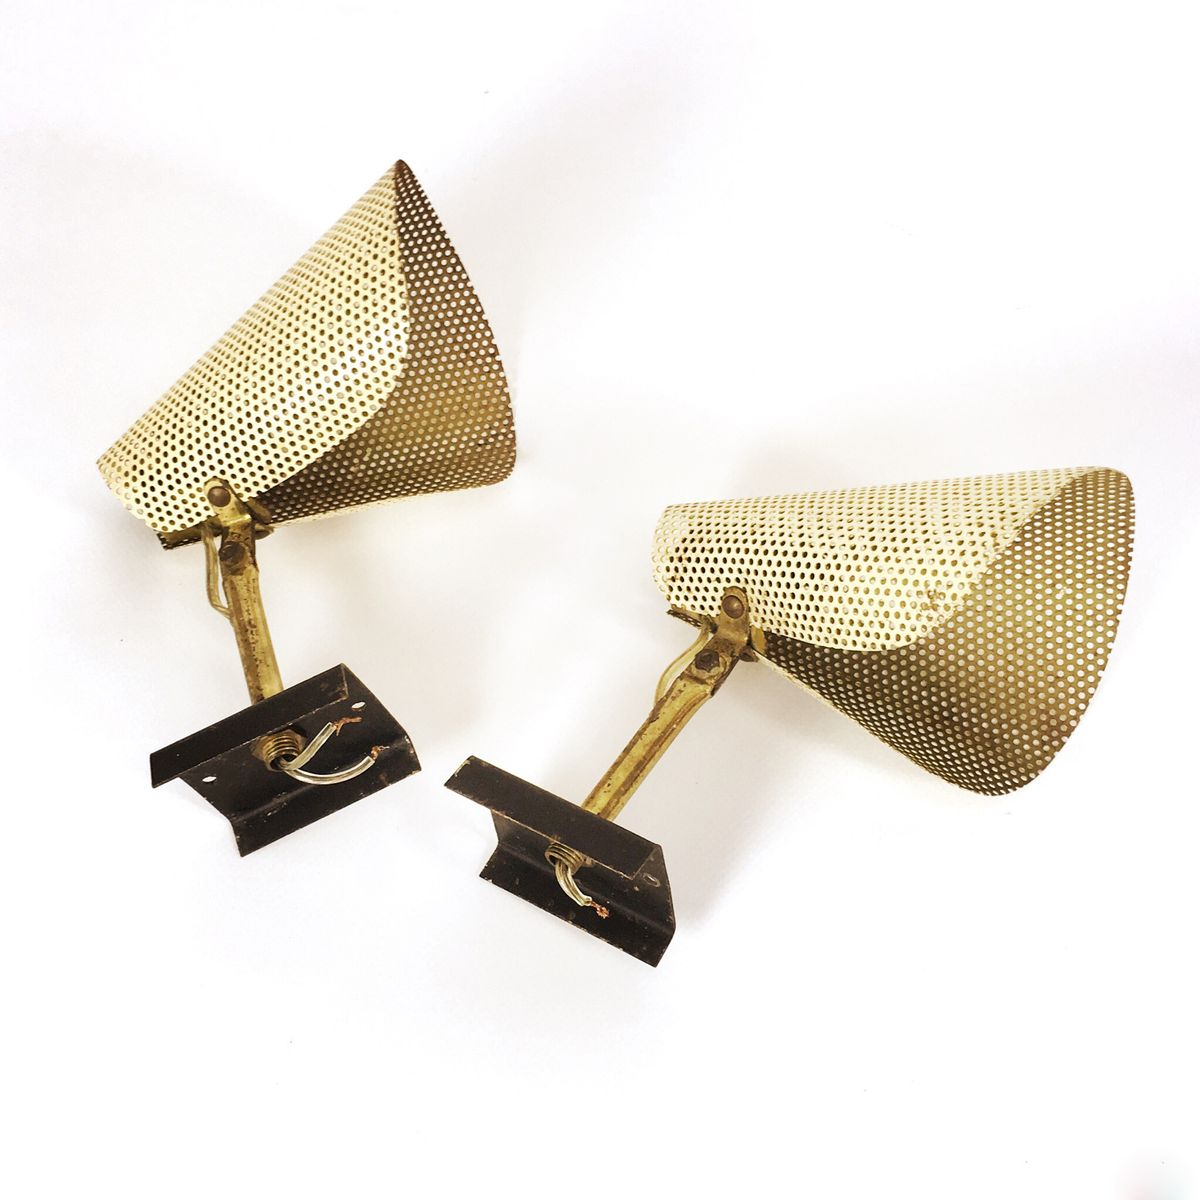 Wall Mount Lamp Set : French Wall Mounted Lamps, 1960s, Set of 2 for sale at Pamono